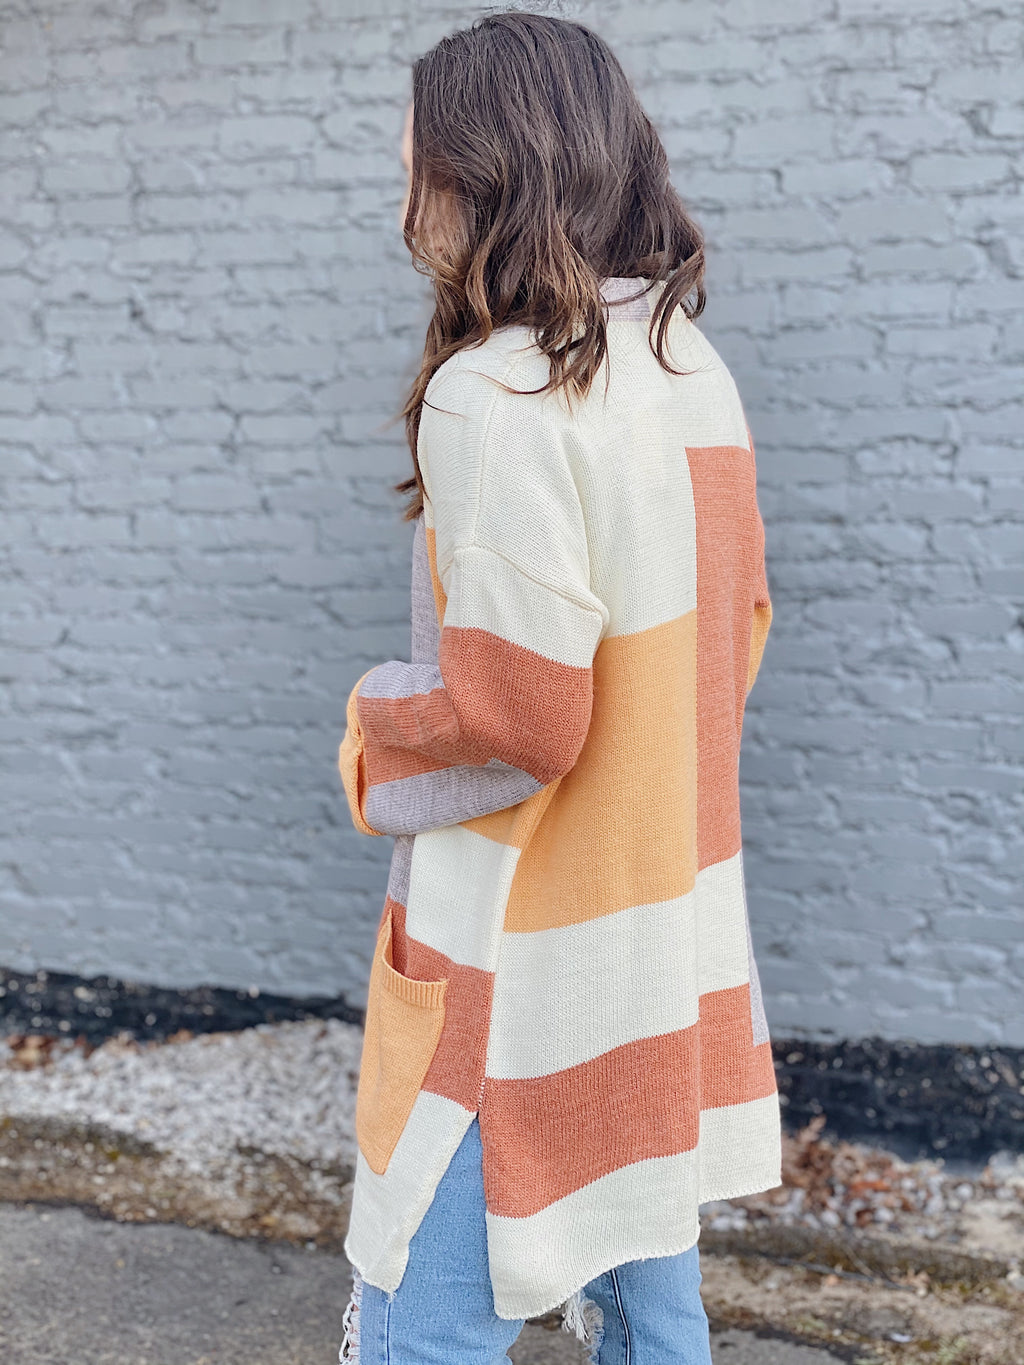 Sunset Avenue Cardigan